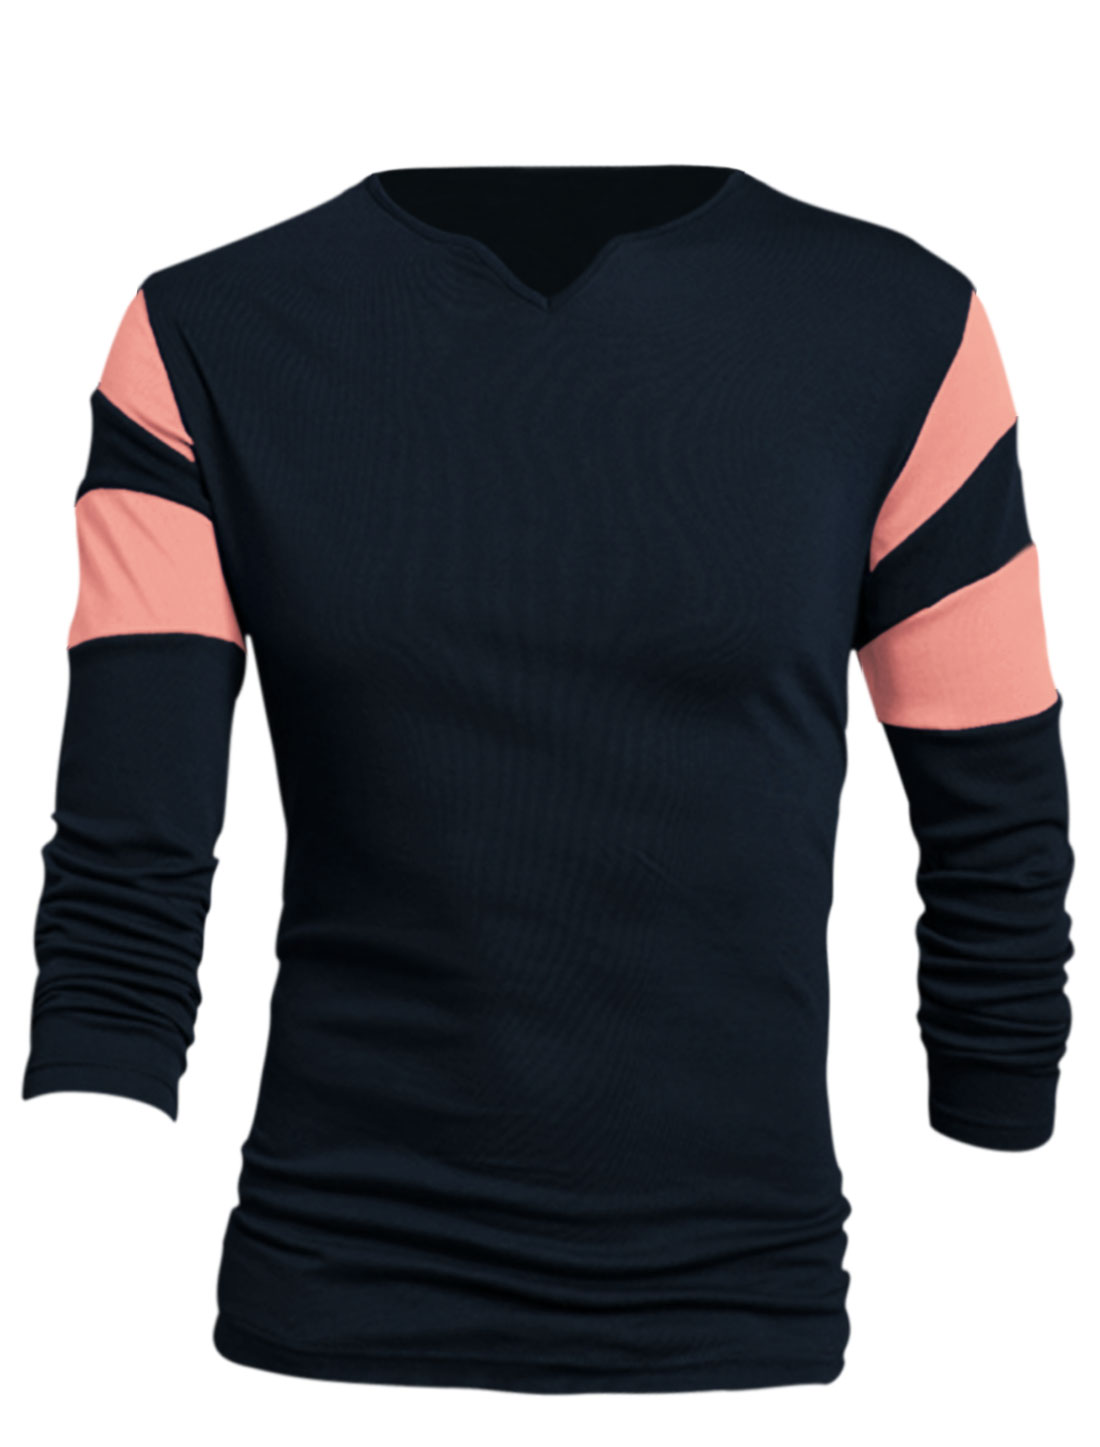 Men Navy Blue Contrast Sleeves Pullover New Style Leisure T-Shirt L